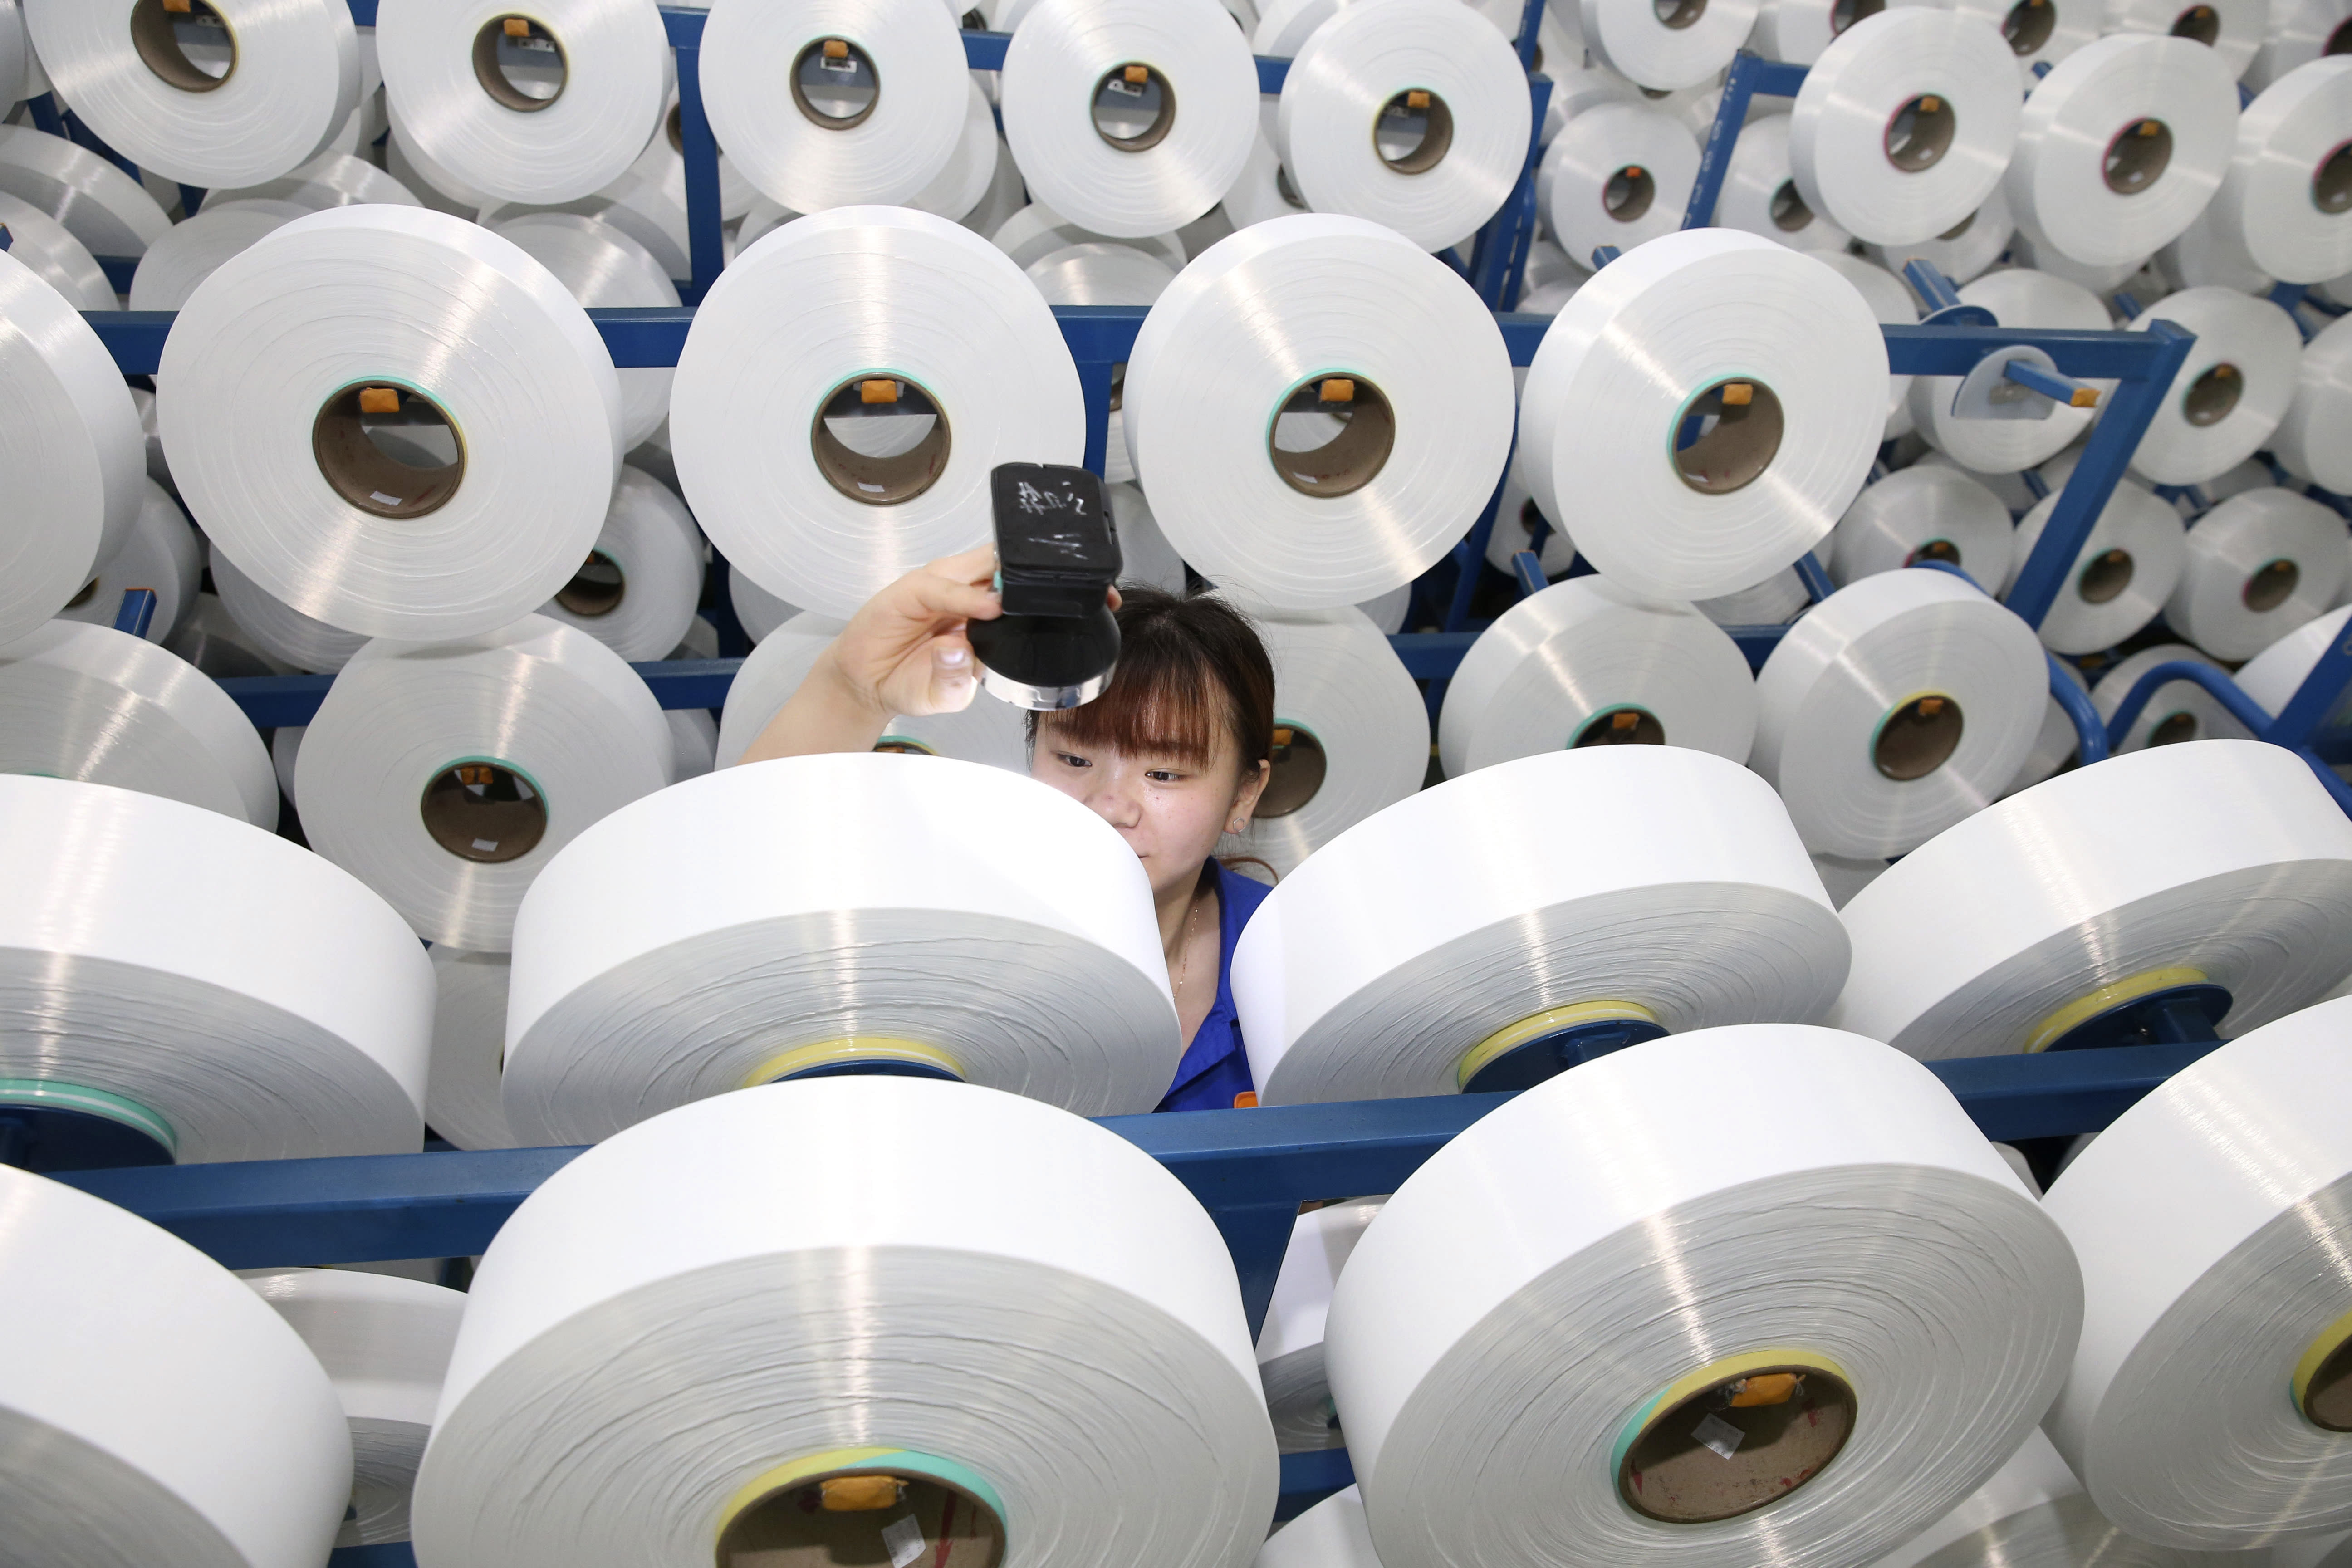 In this Aug. 25, 2019, photo, an employee works on the production line of a polyester manufacturer in Suzhou in eastern China's Jiangsu province. Two surveys of Chinese manufacturing show demand is weak amid a mounting tariff war with Washington over trade and technology. (Chinatopix via AP)